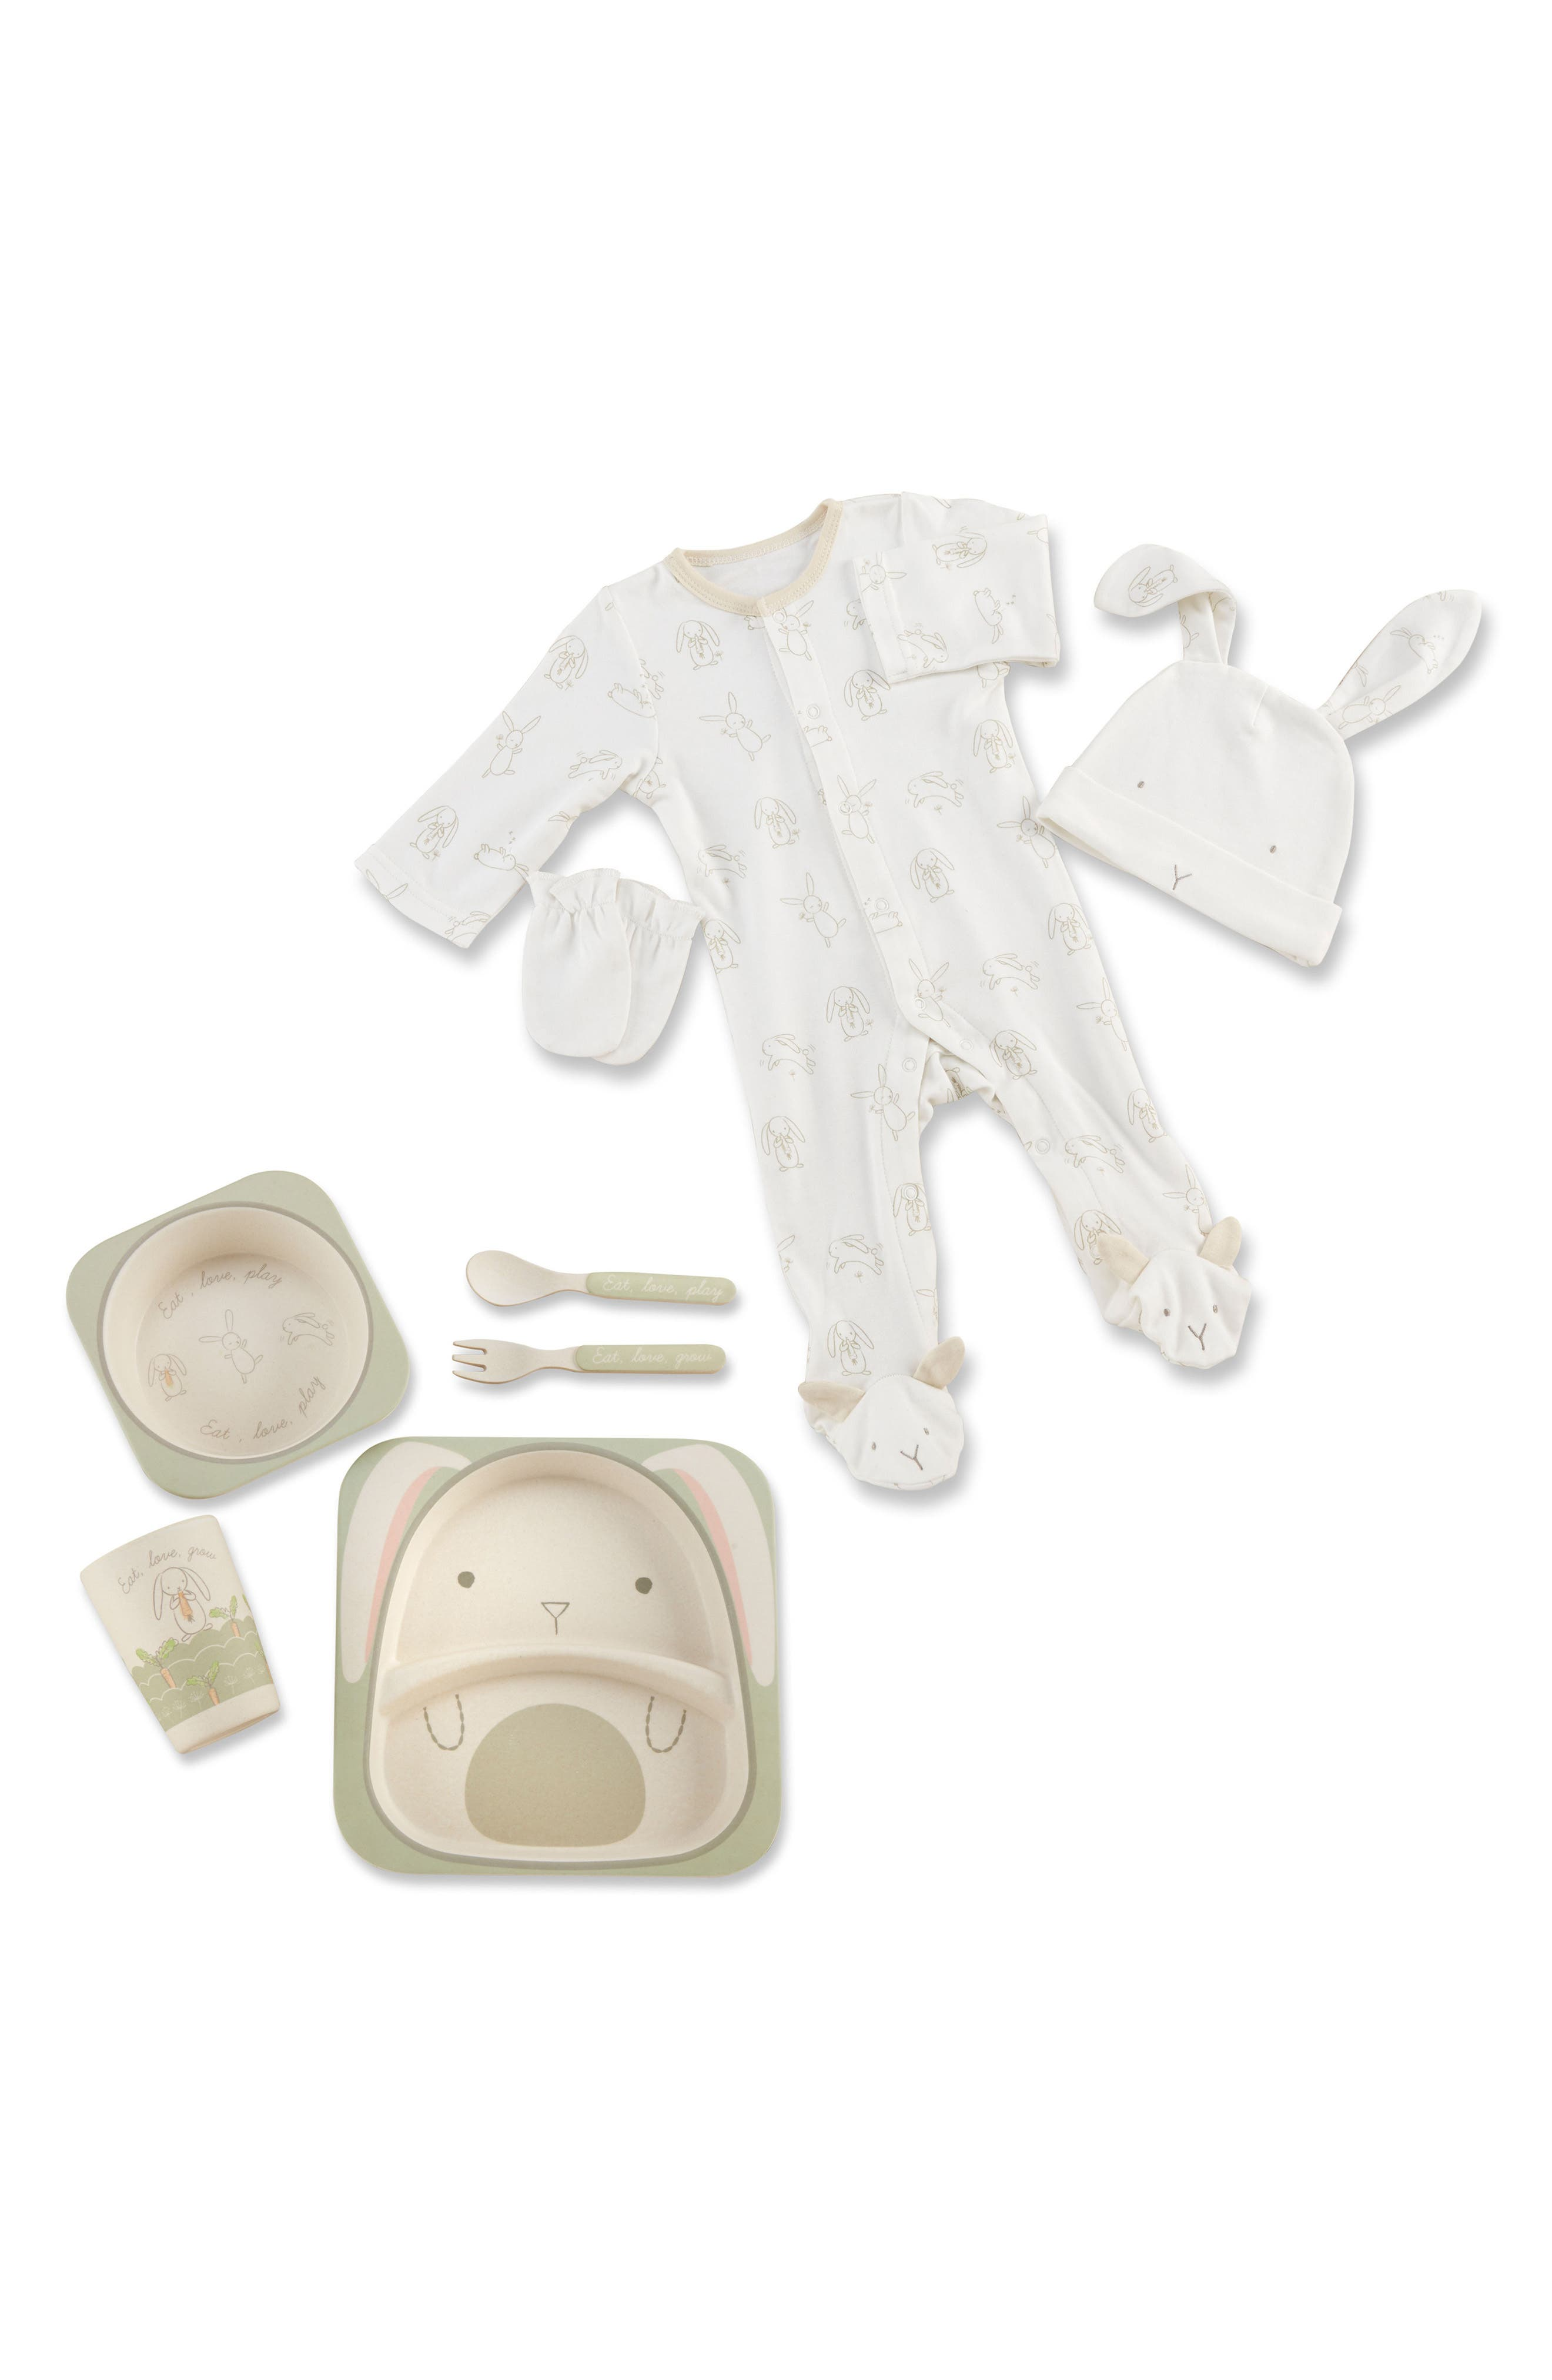 Natural Baby One-Piece Pajamas, Hat, Mittens & 5-Piece Feeding Set,                         Main,                         color, Beige And White